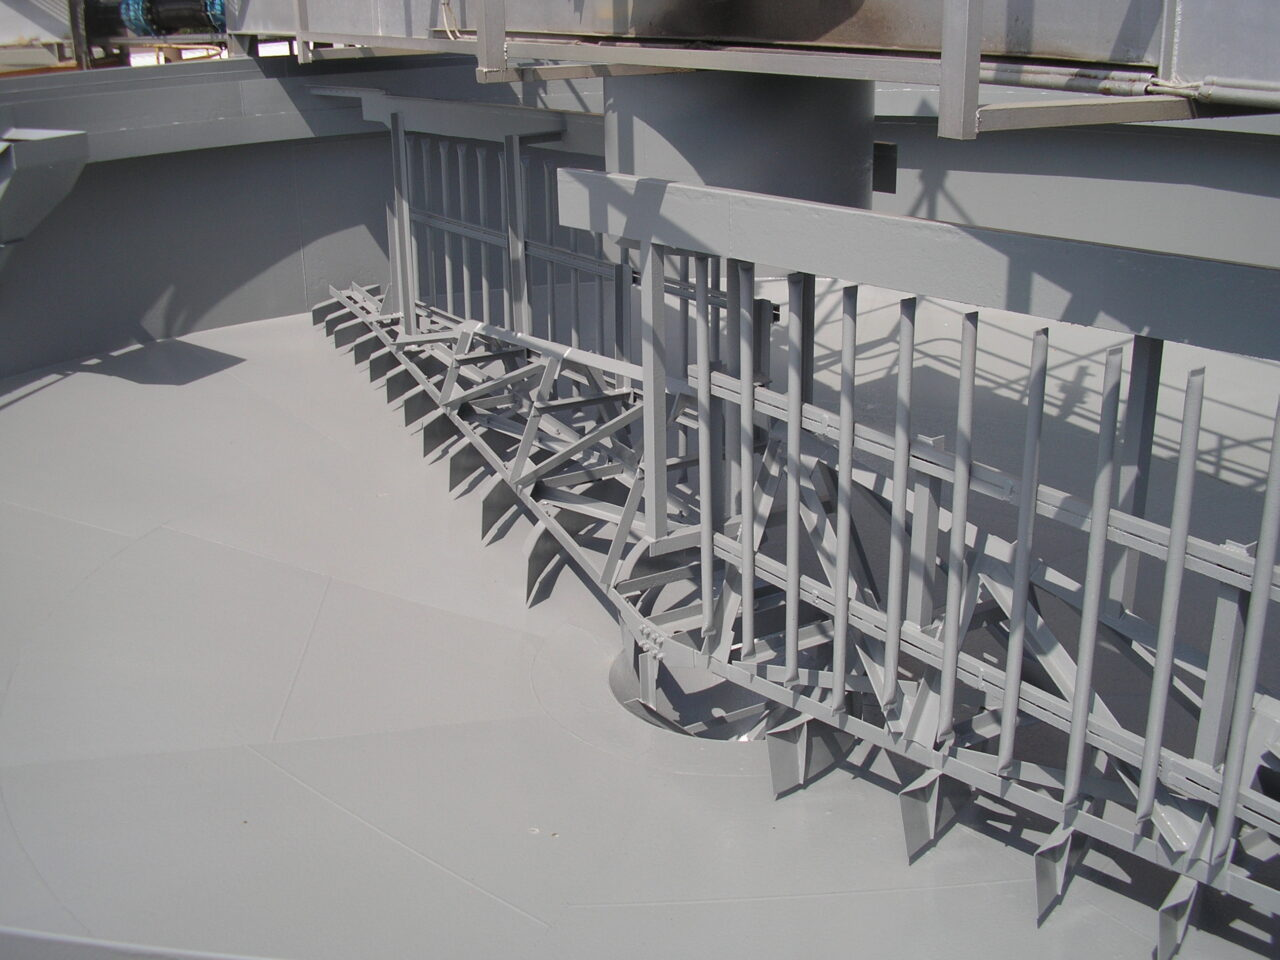 Substrate protected against erosion and corrosion with Belzona 5811 Immersion Grade